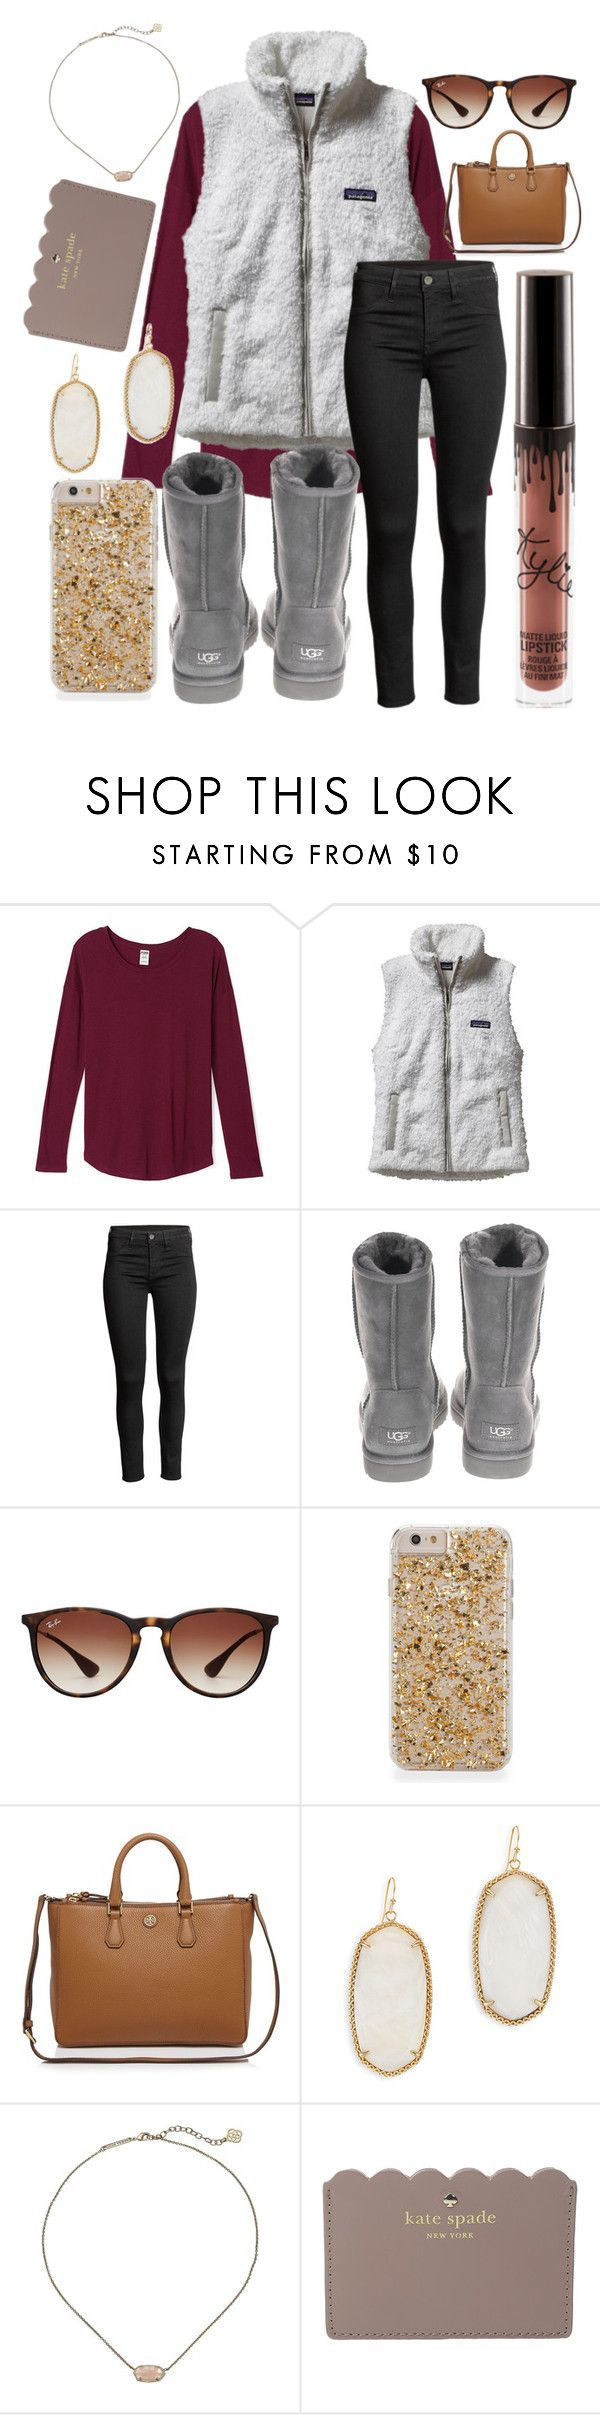 """""""It's the most wonderful time of the year❤️"""" by jadenriley21 ❤ liked on Polyvore featuring Patagonia, UGG Australia, Ray-Ban, Tory Burch, Kendra Scott and Kate Spade"""